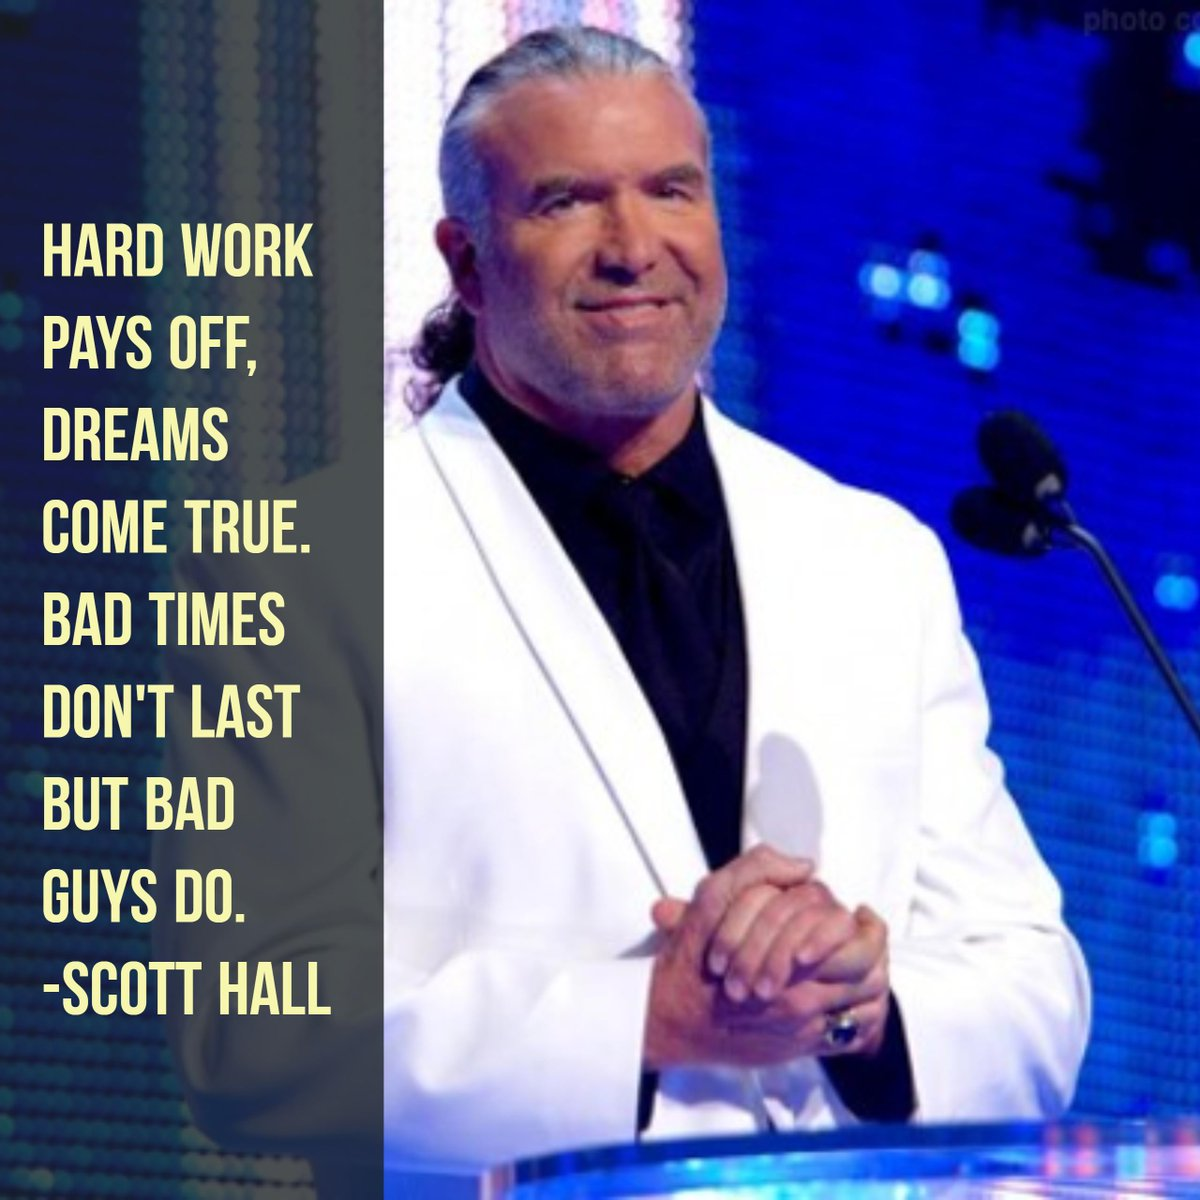 'Bad times don't last but bad guys do.' Scott Hall